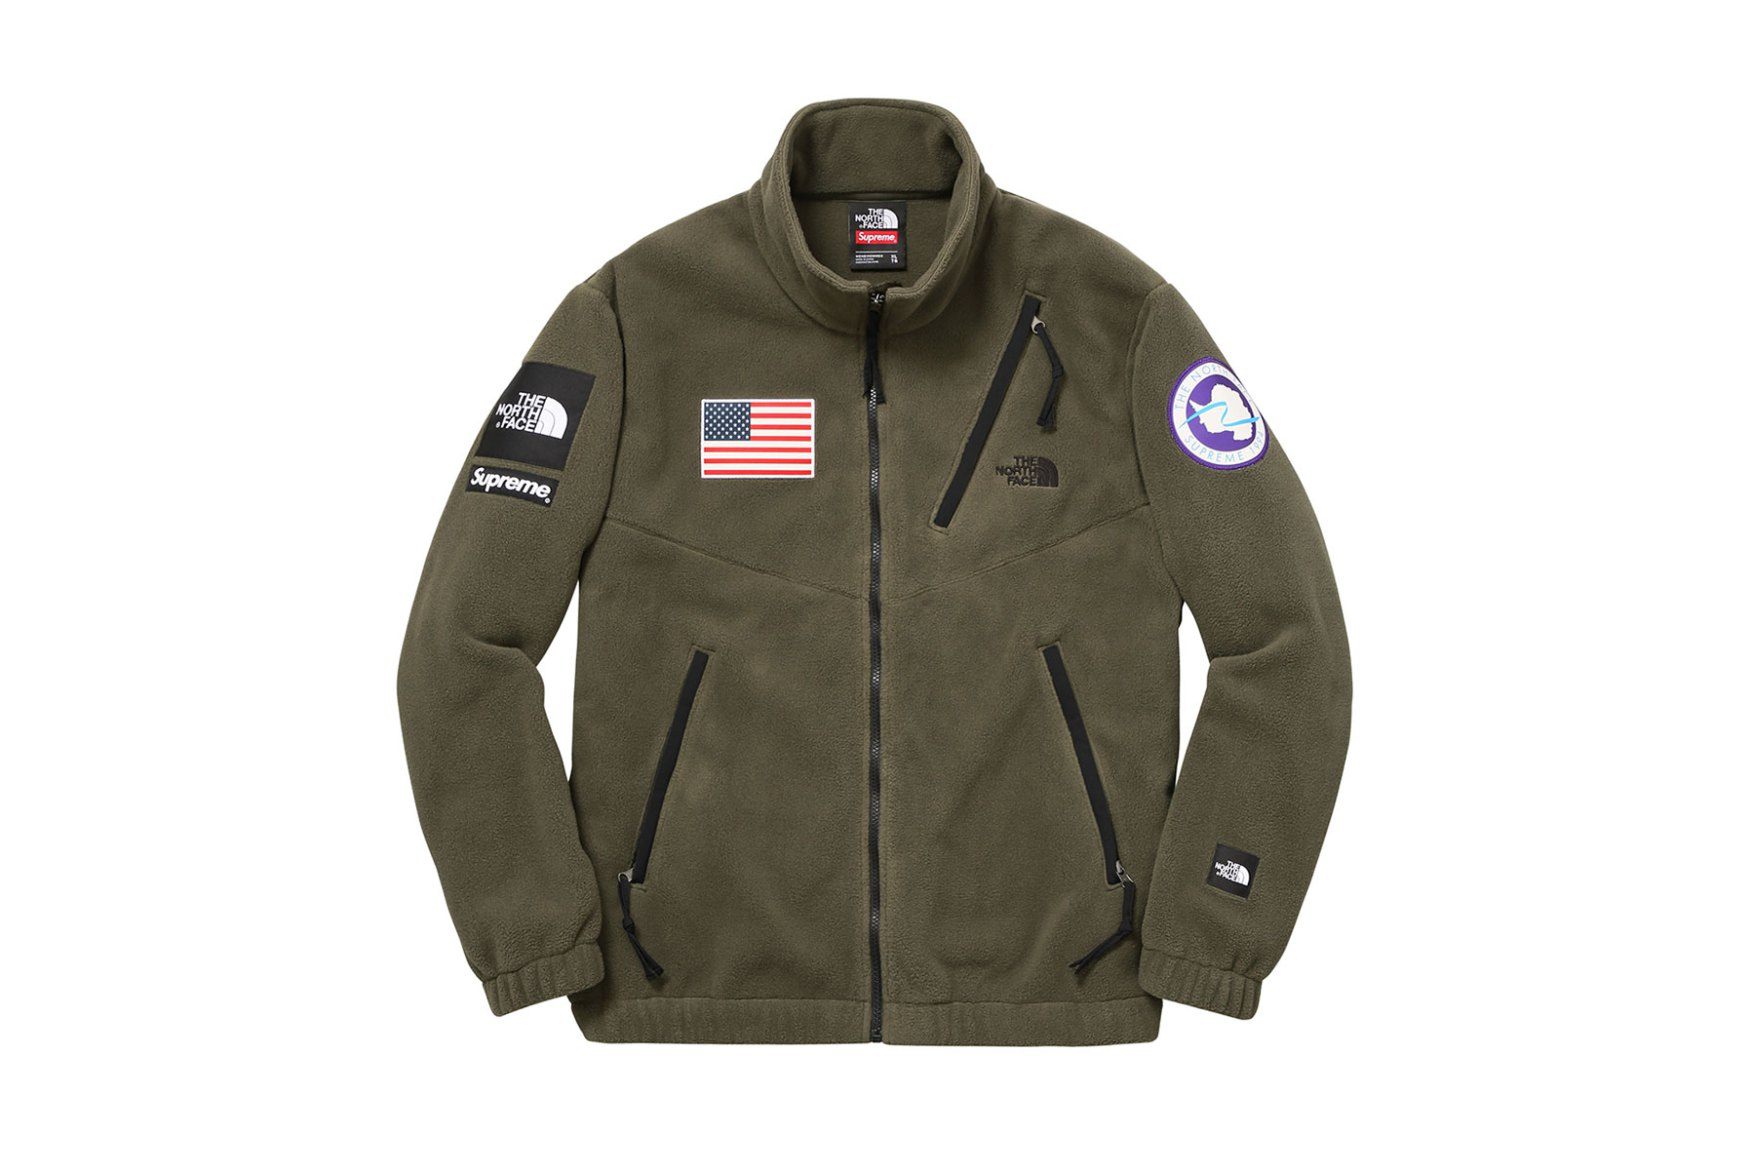 supreme-the-north-face-2017-spring-summer-olive-polartec-fleece-jacket-24